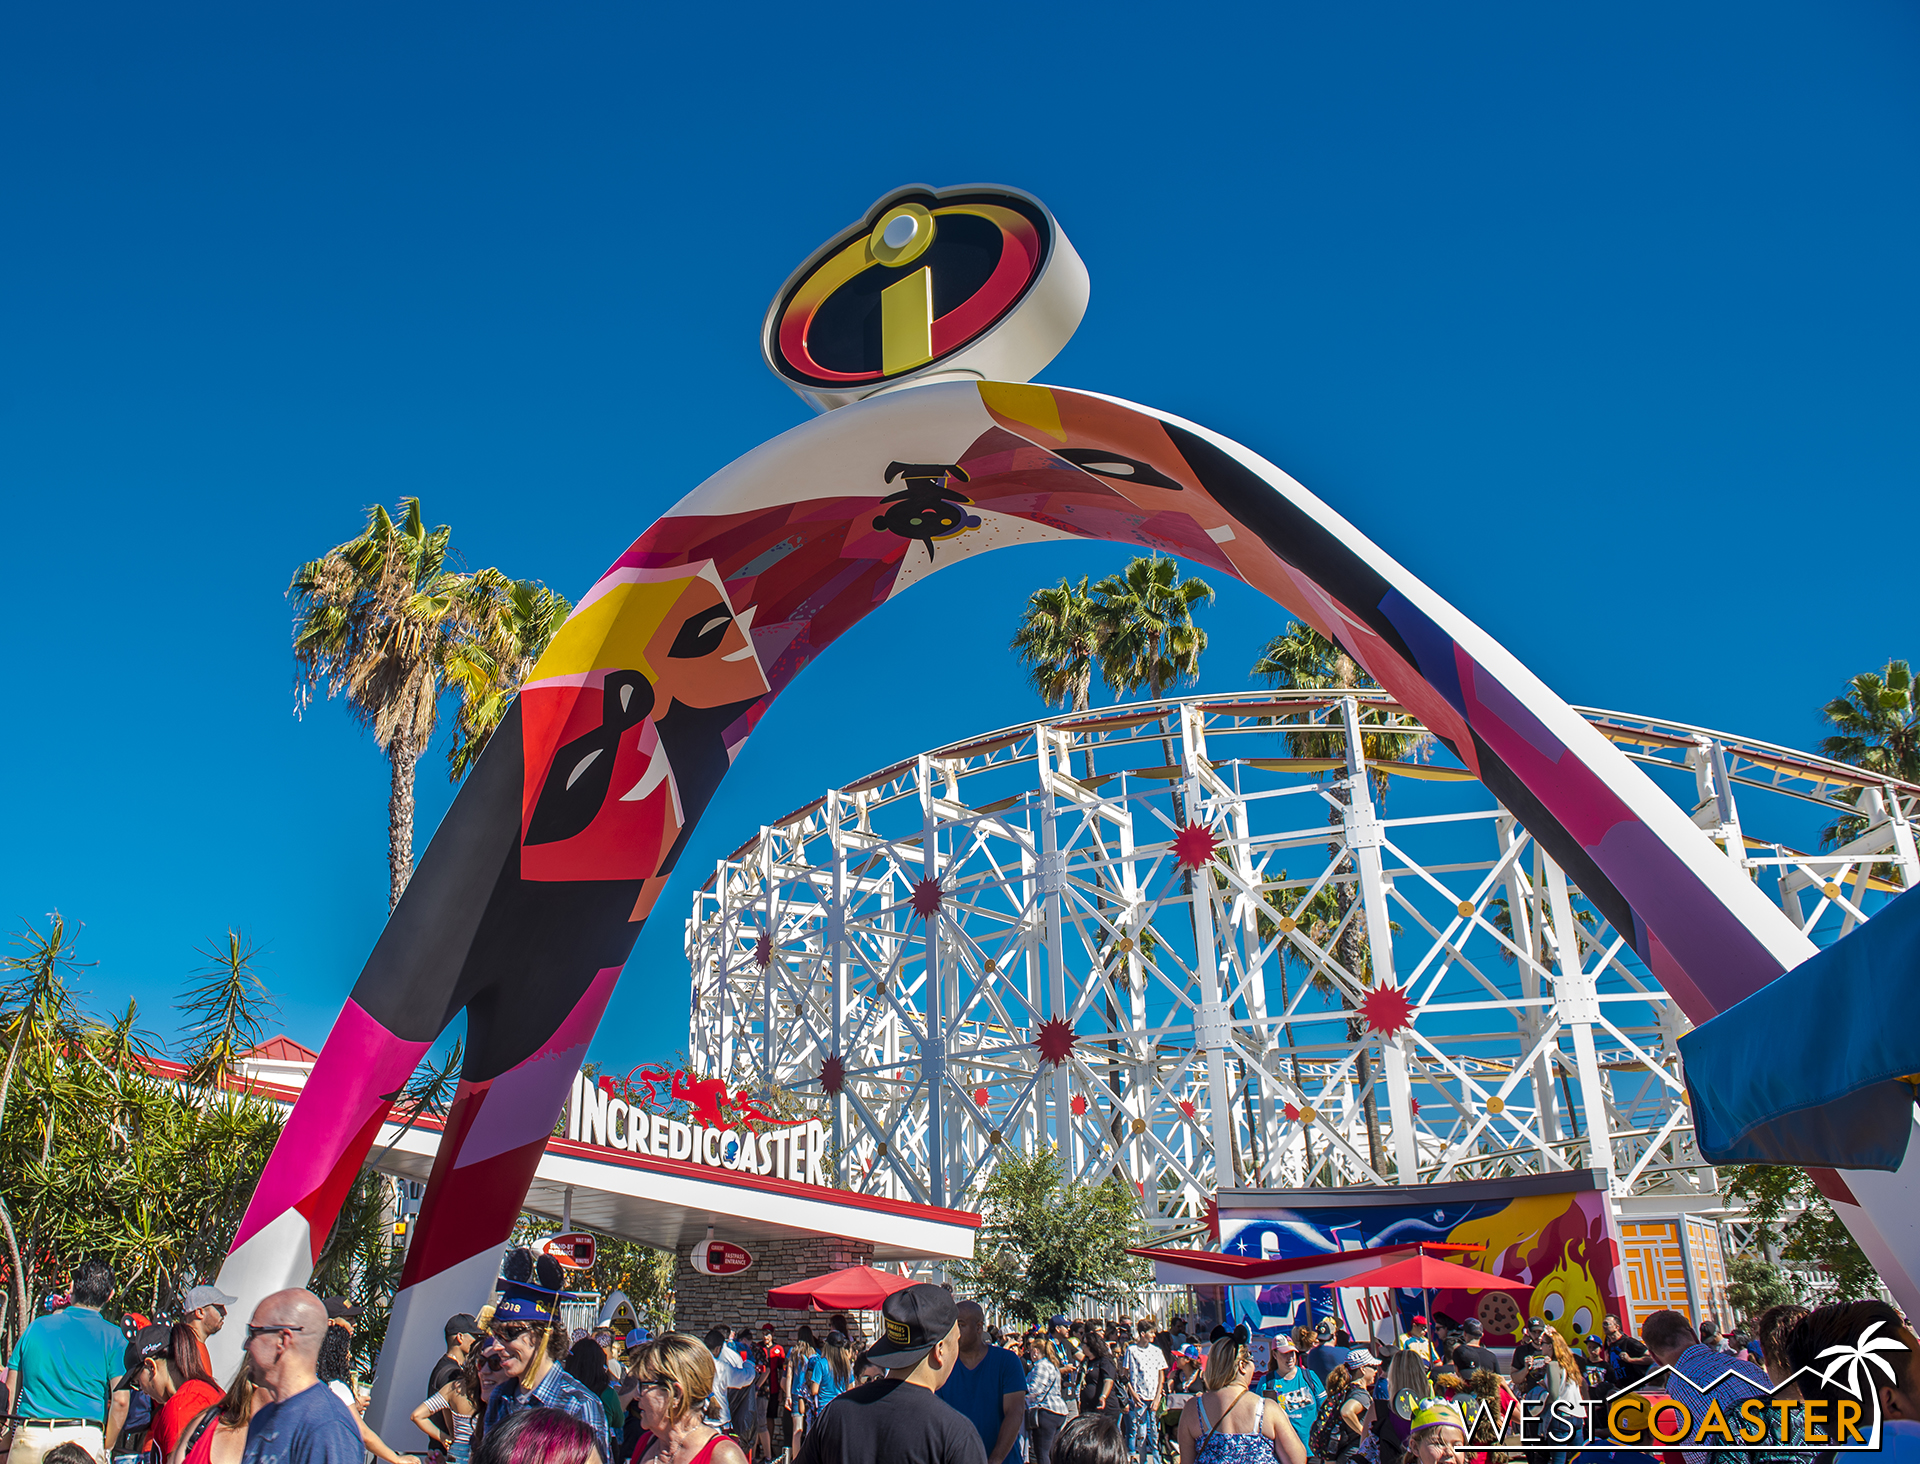 A sleek archway marks the entrance into the entry plaza for the Incredicoaster.